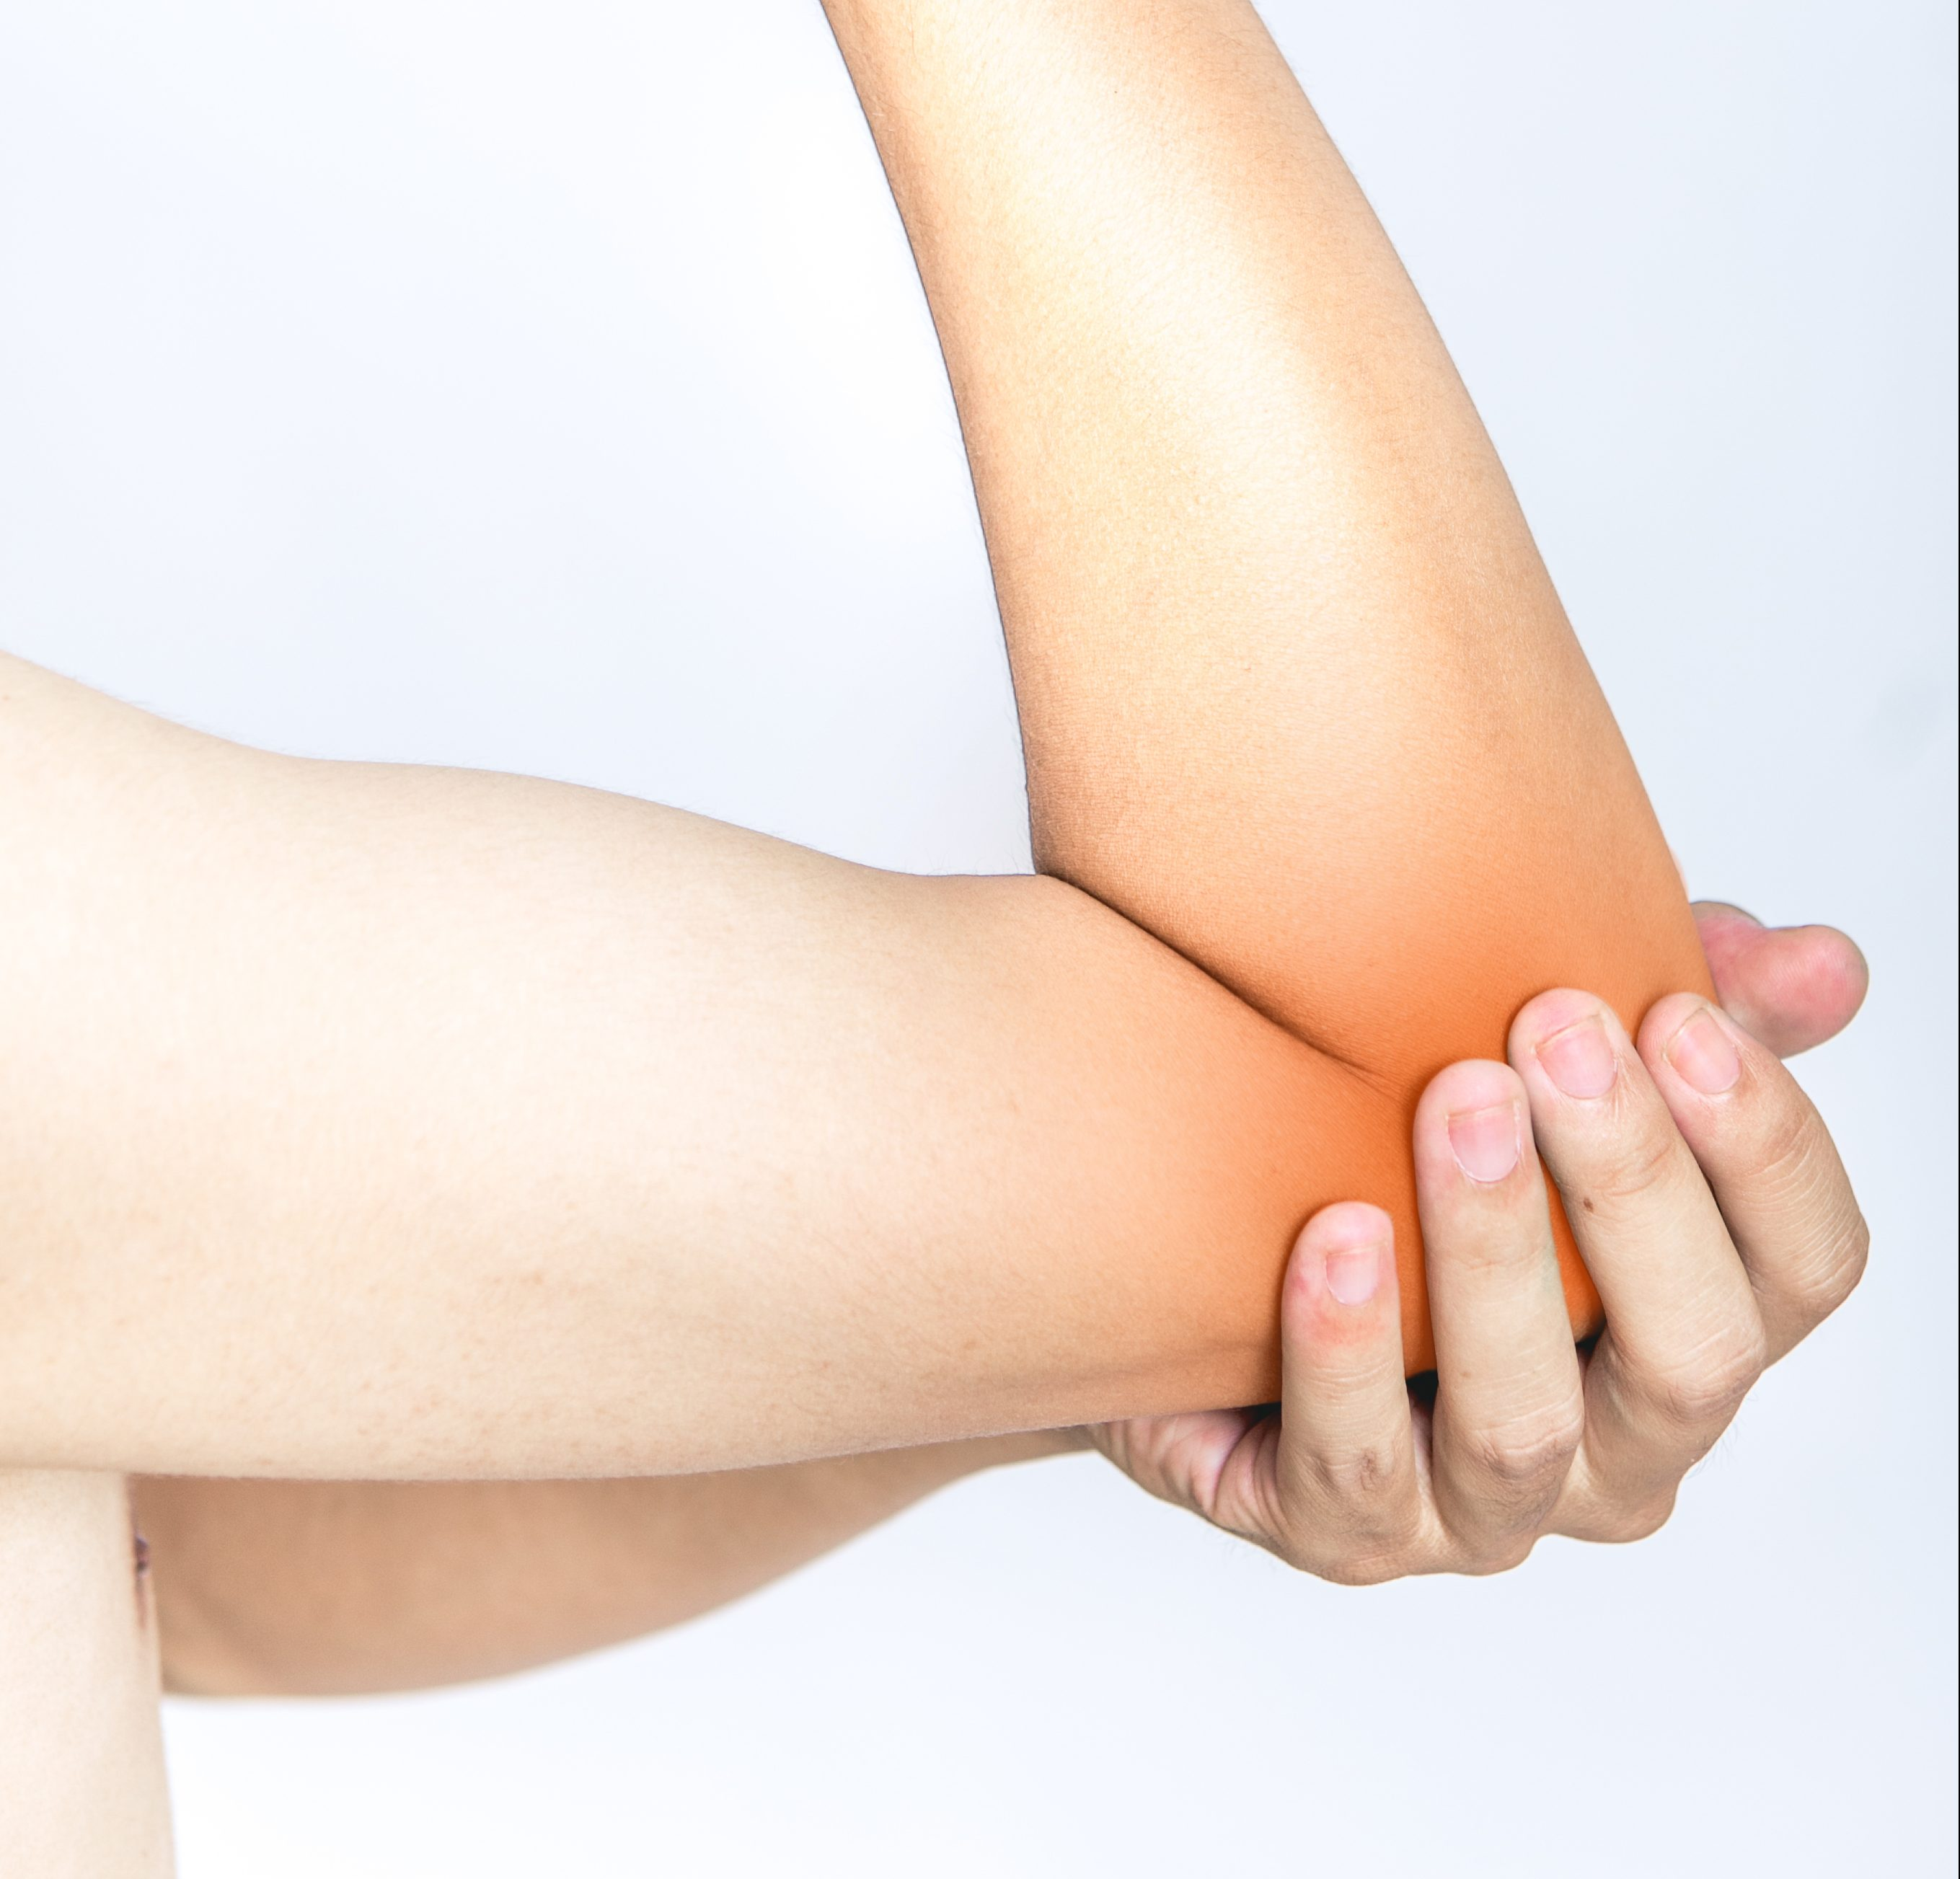 Best Exercises For Tennis Elbow